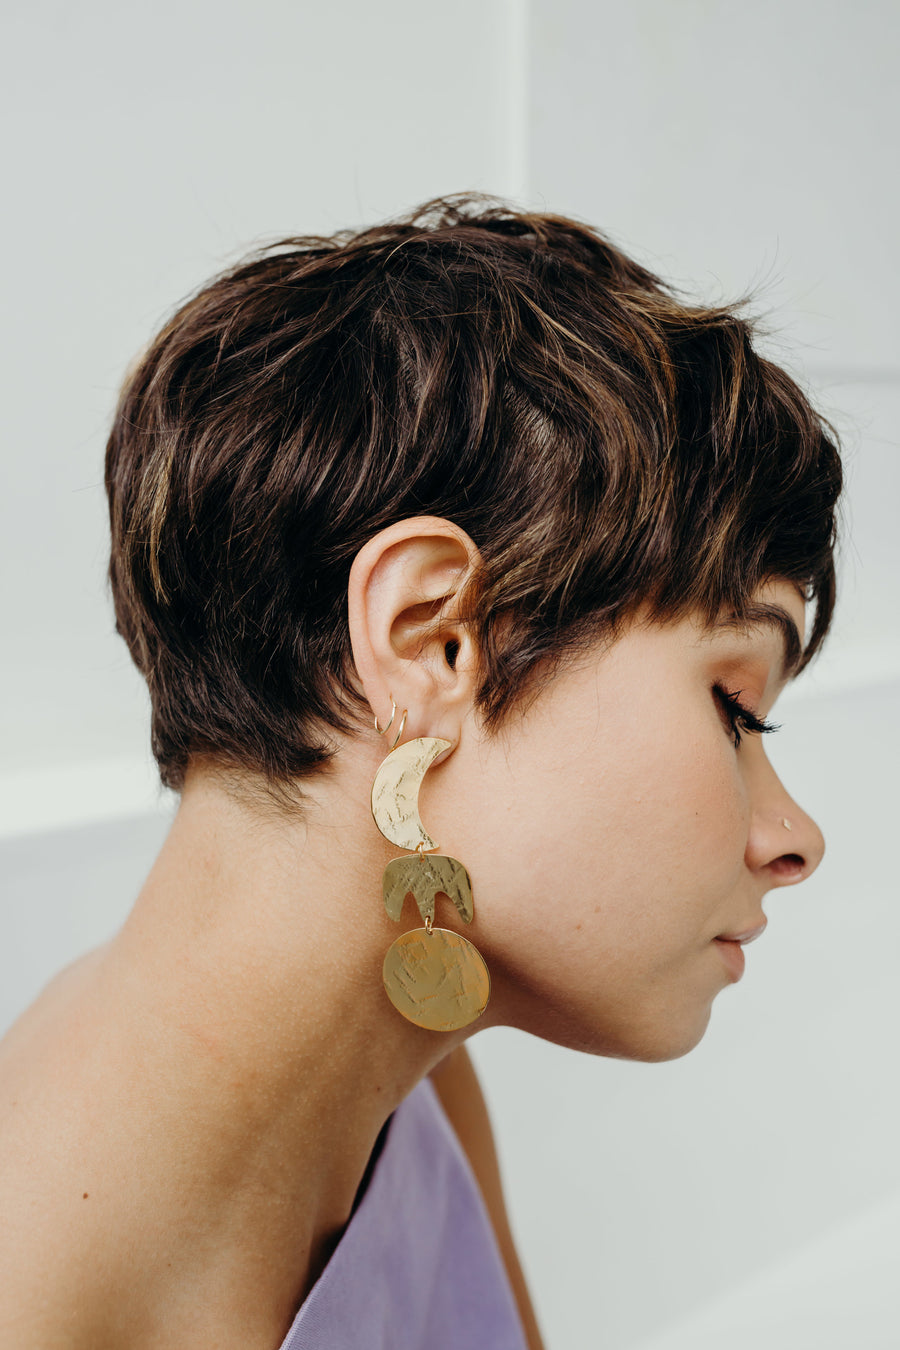 Bauhaus Earrings